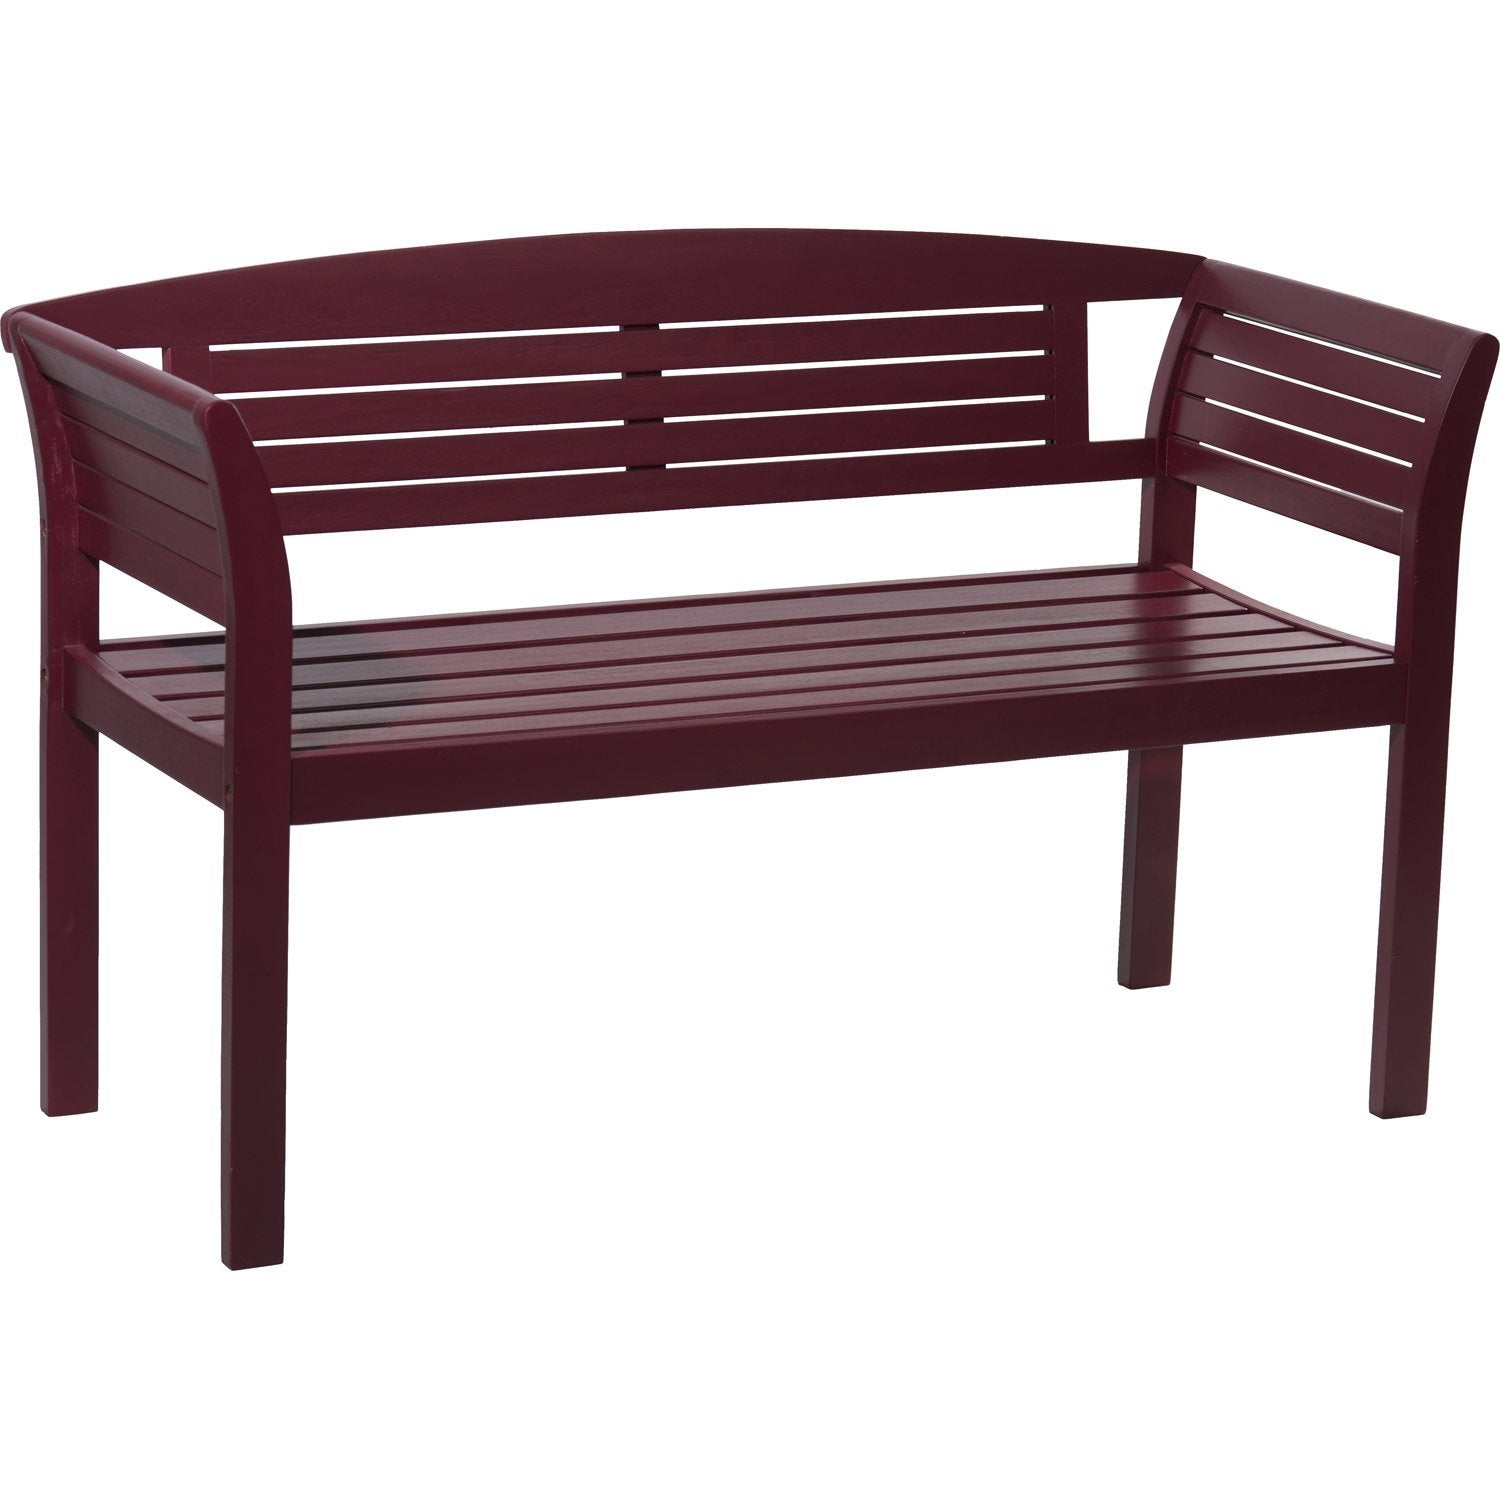 banc 2 places de jardin en bois new york rouge leroy merlin. Black Bedroom Furniture Sets. Home Design Ideas